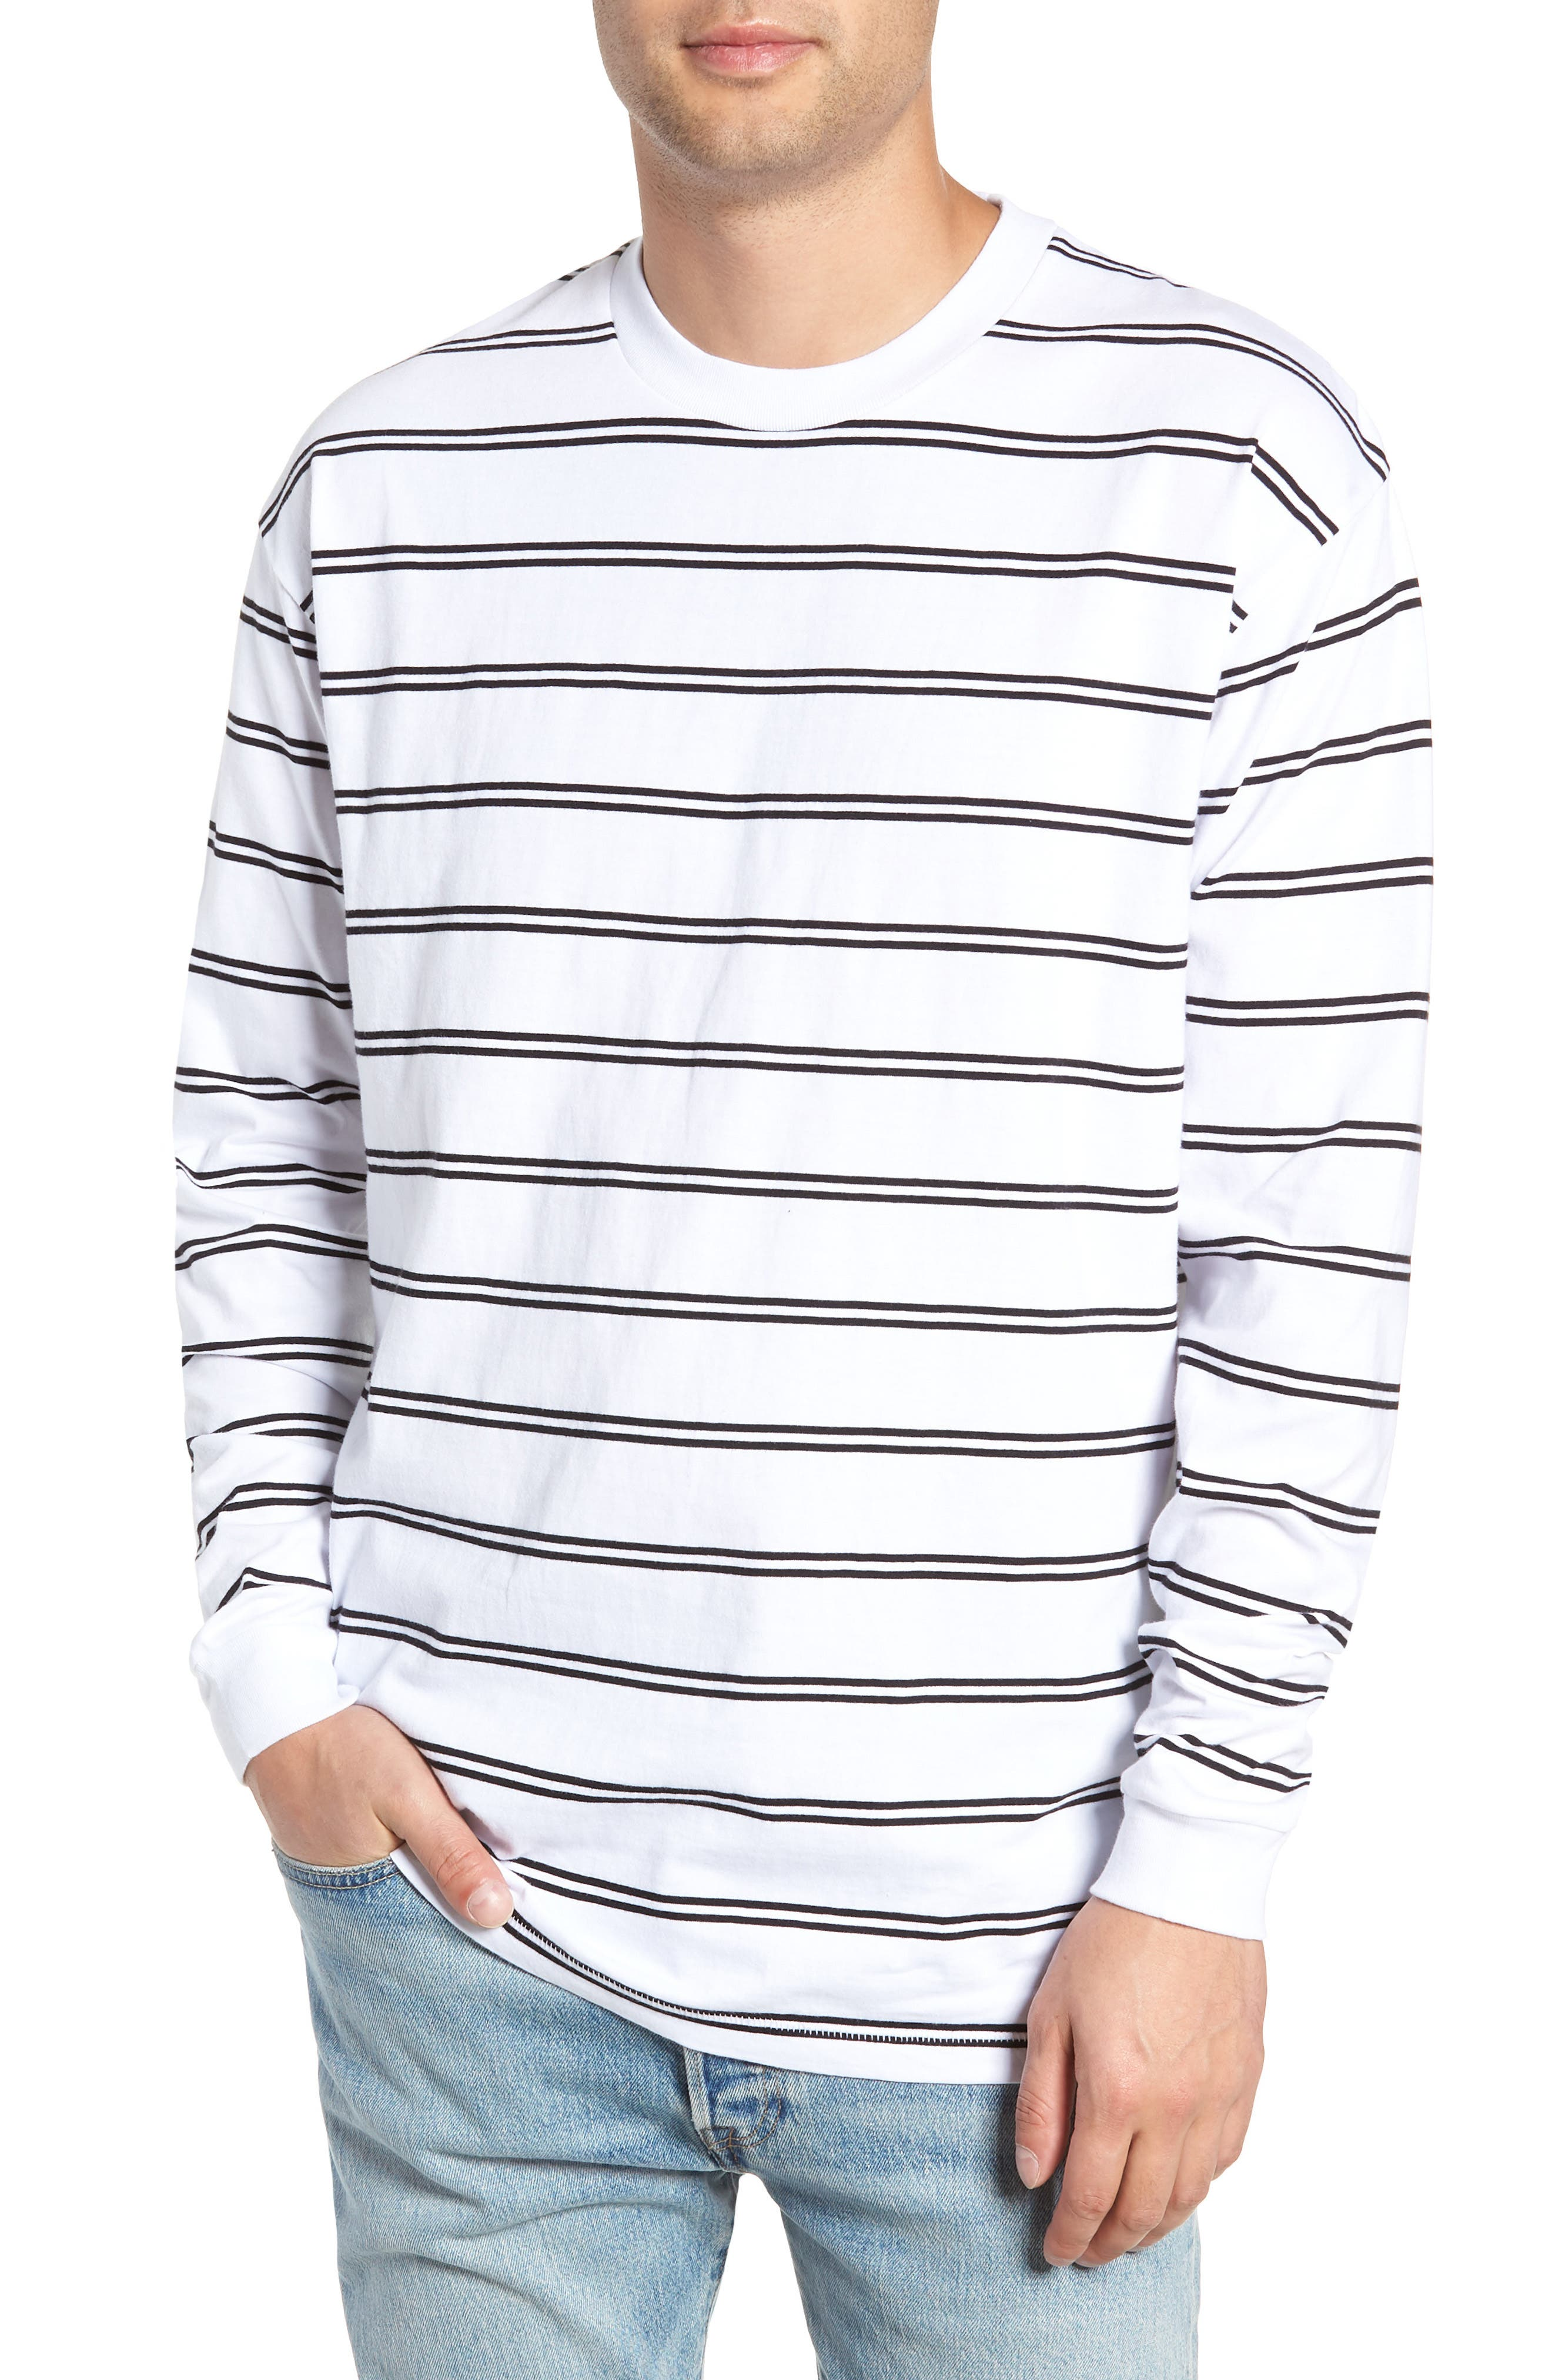 Channel Box Long Sleeve T-Shirt,                         Main,                         color, 100